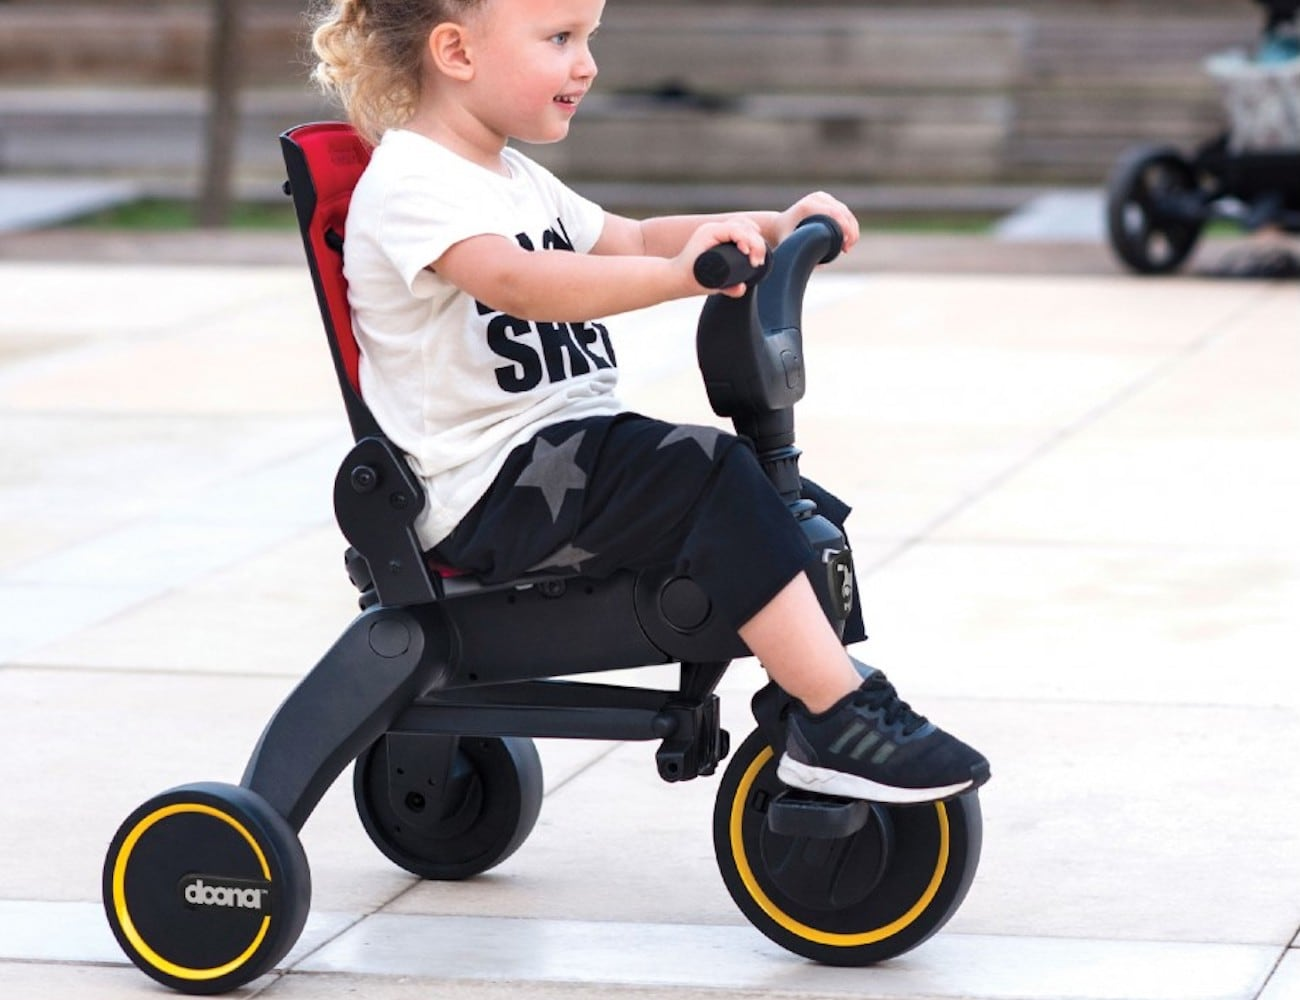 Doona Liki Trike S3 Folding Push Tricycle is compact enough for you to carry around